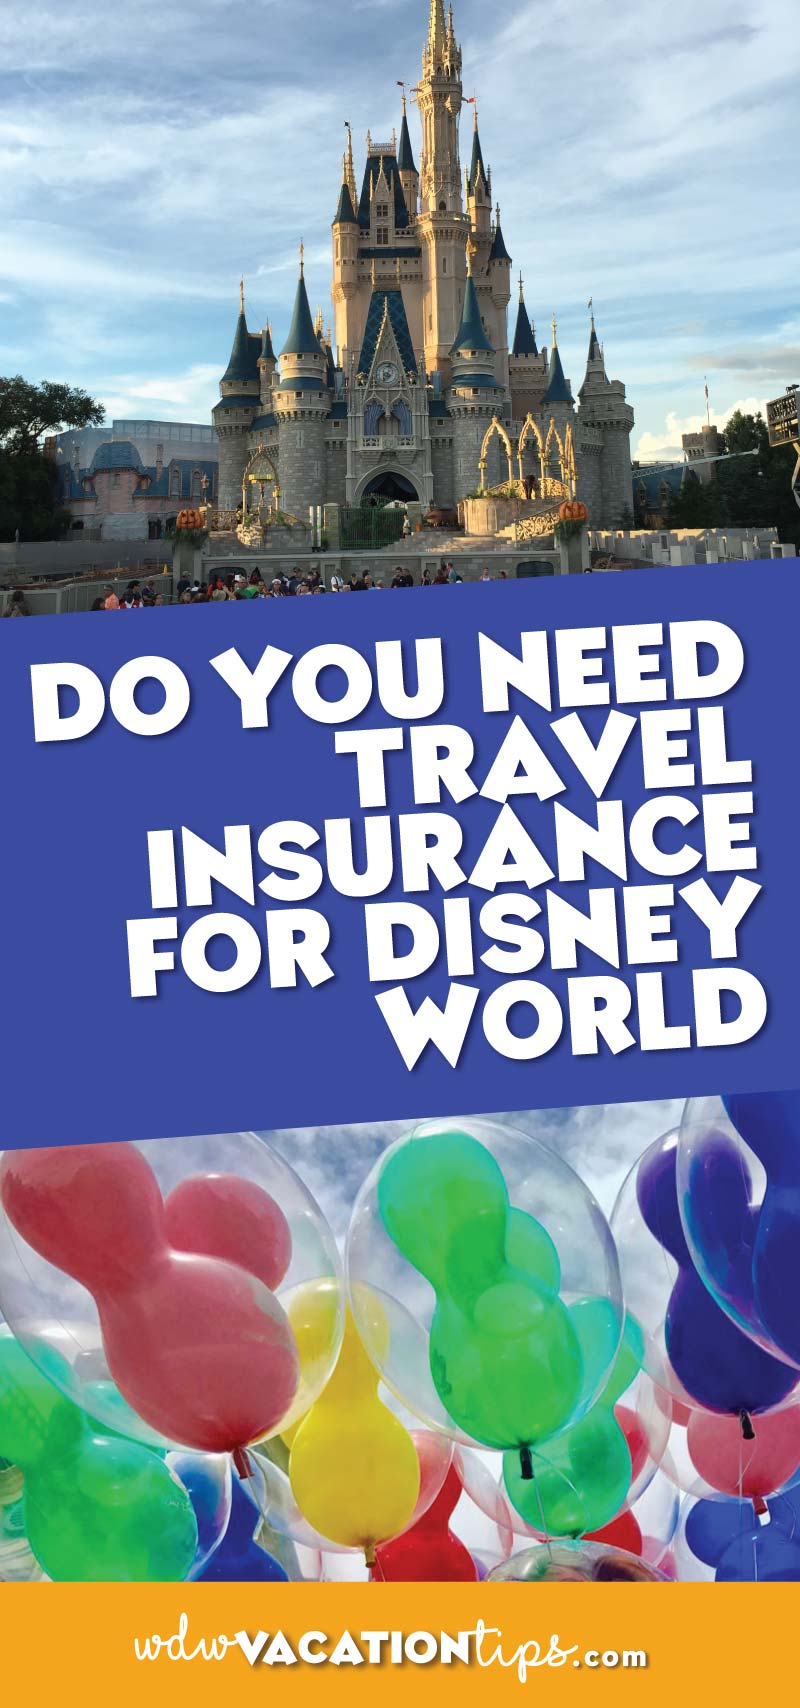 I know travel insurance for a Disney vacation can seem like just one more expense but before you decided you should read over why you may end up needing insurance and what travel insurance options are available to you when traveling to Disney World.